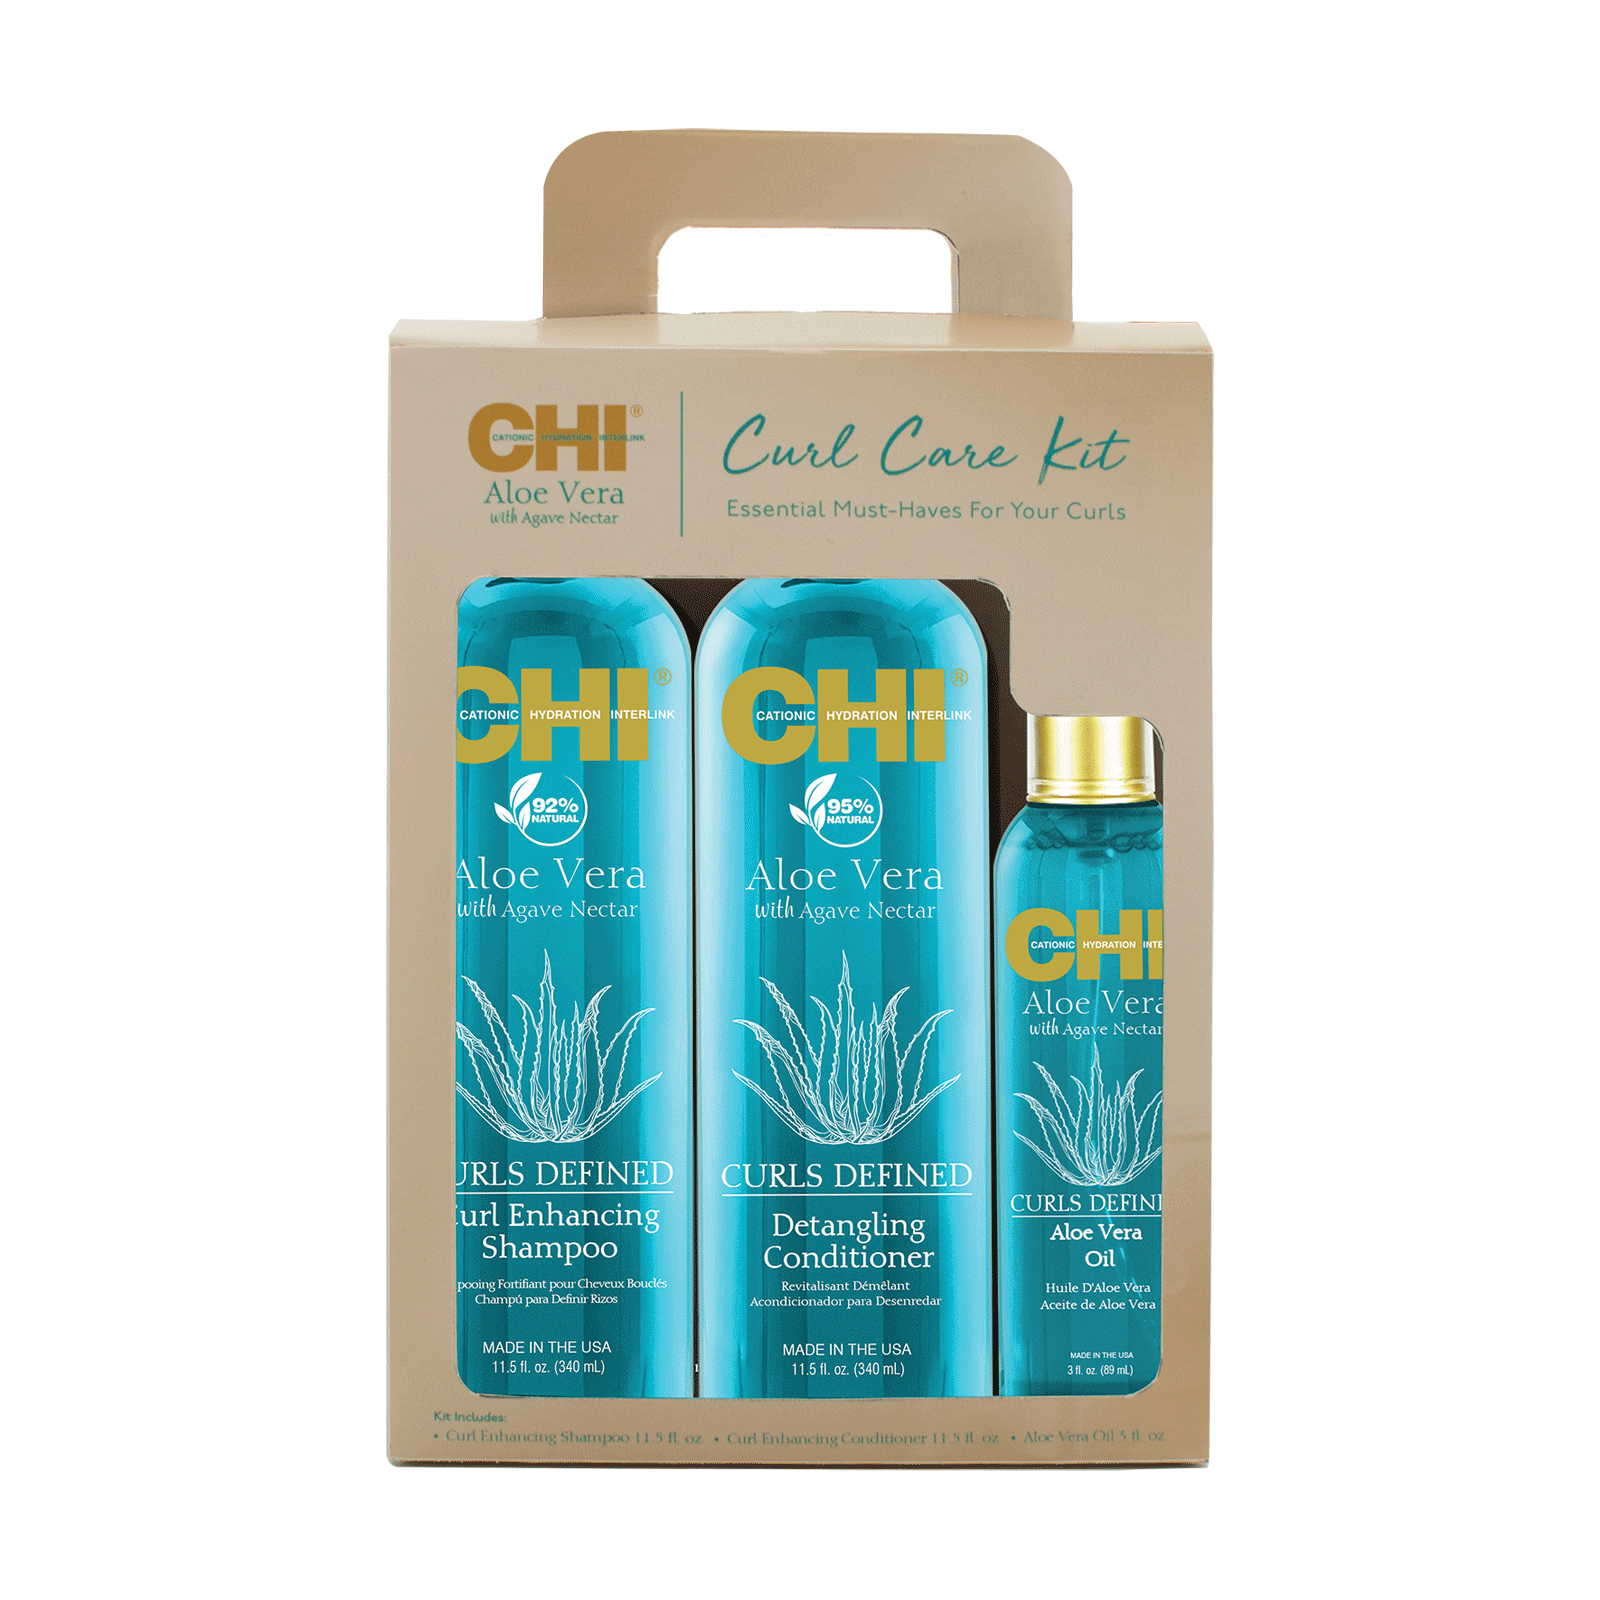 CHI Aloe Vera Curl Care Kit